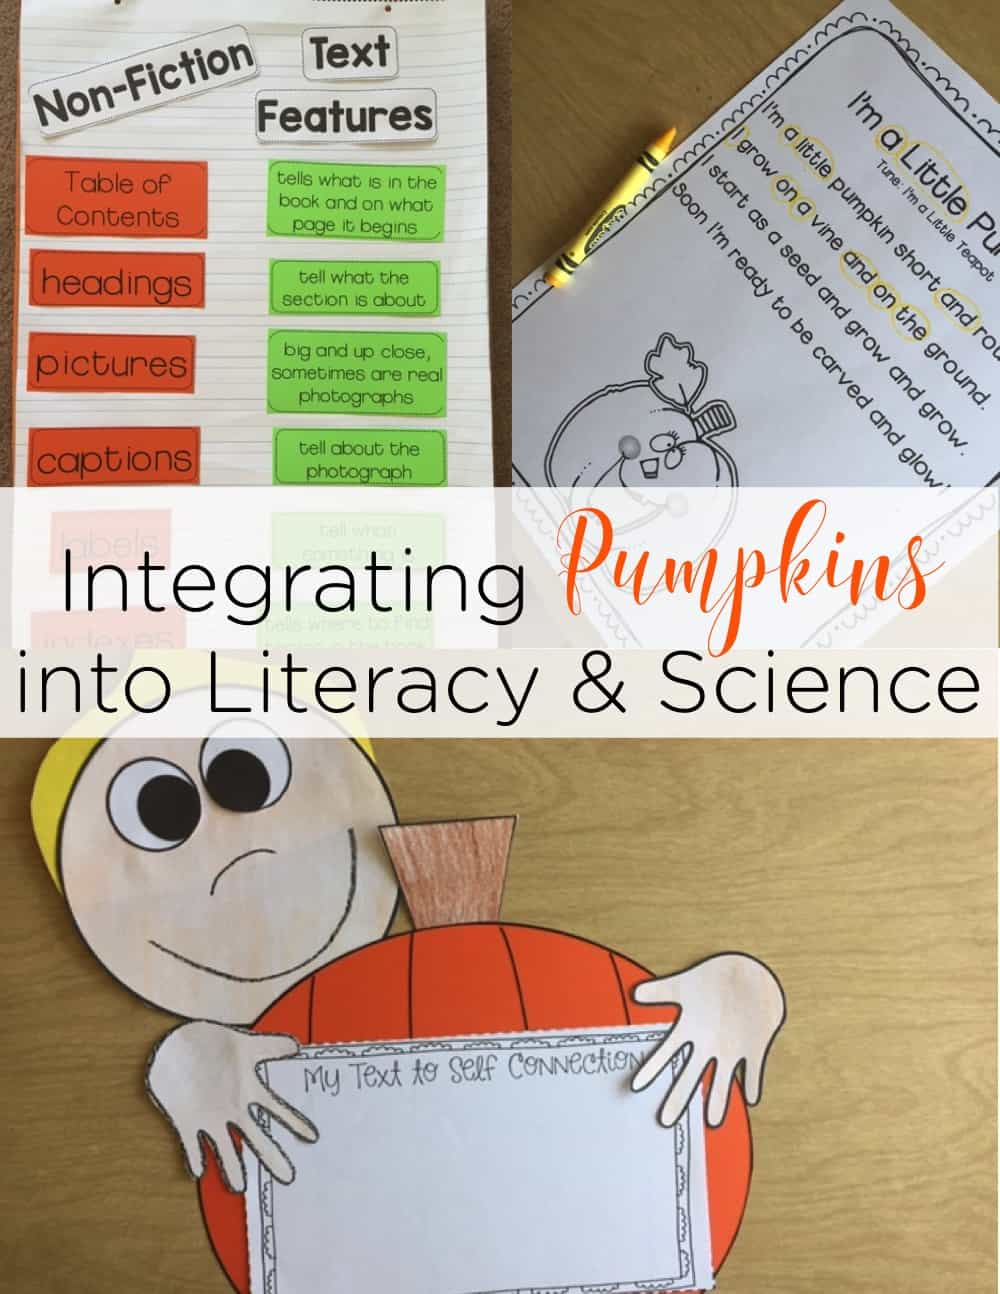 Integrating Pumpkins in k-2 is the perfect way to squeeze science into reading and writing! These pumpkin activities were completely engaging in my classroom!